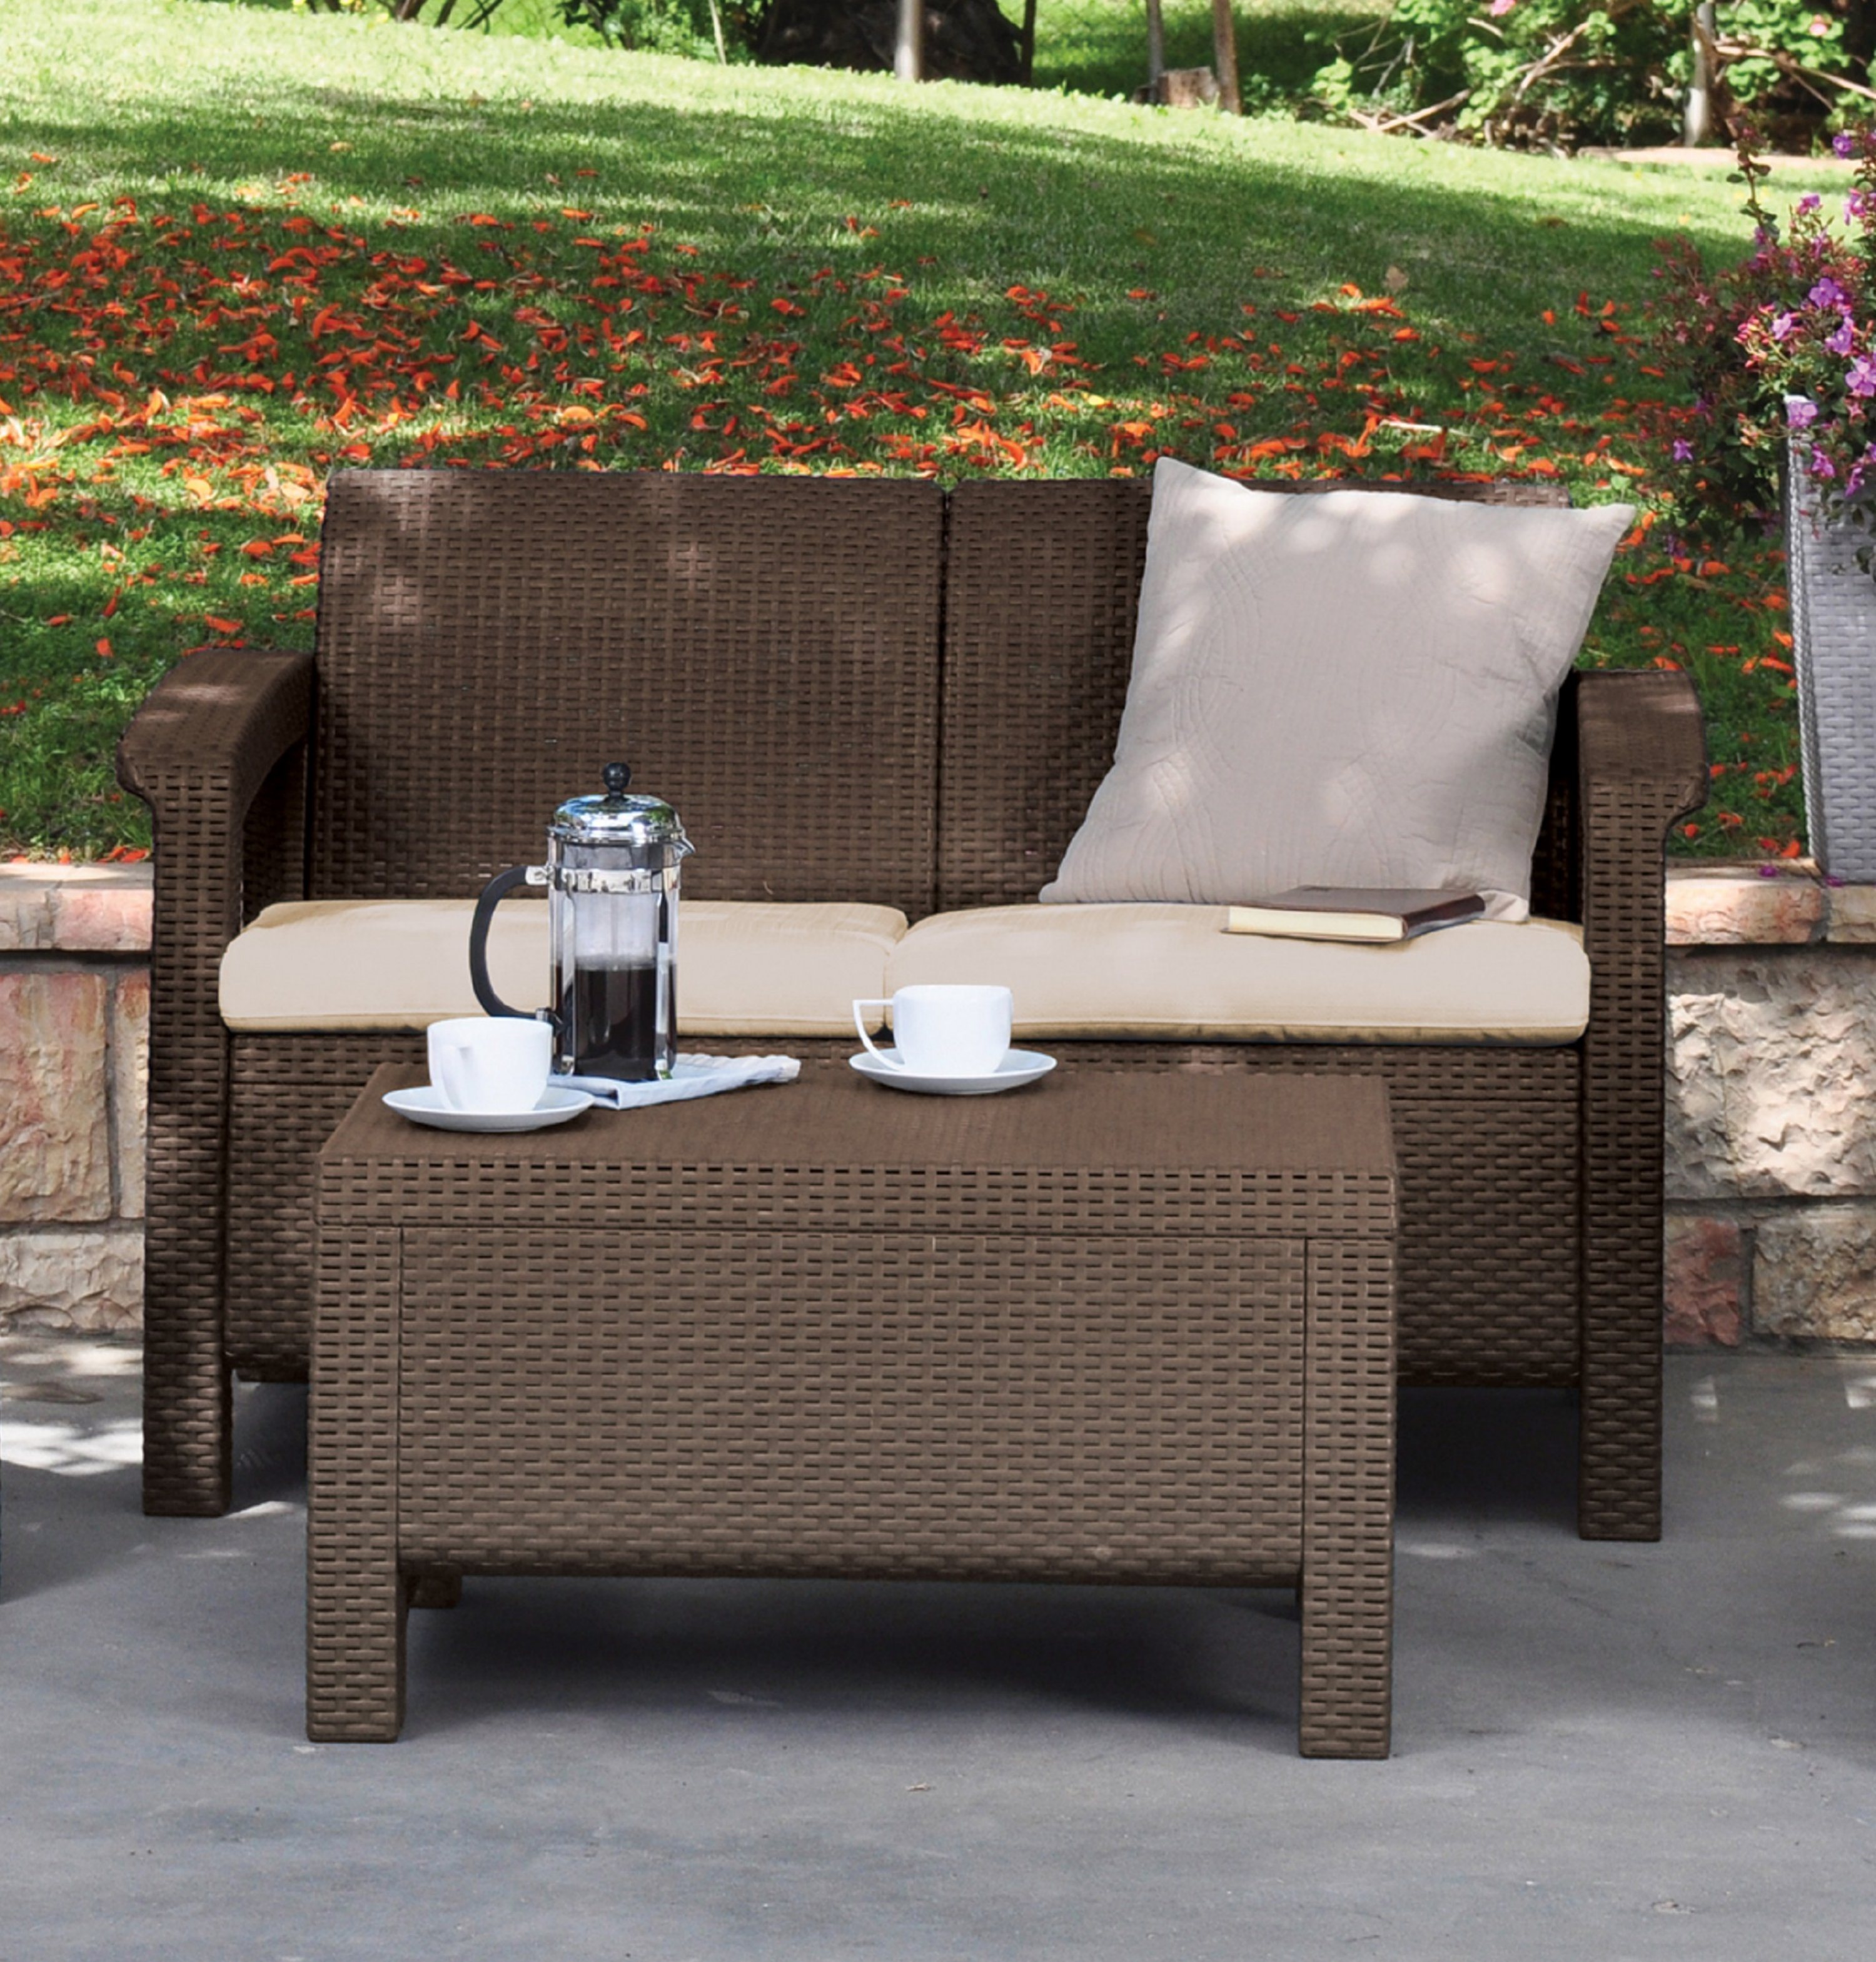 Keter Corfu Resin Love Seat with Cushions All Weather Plastic